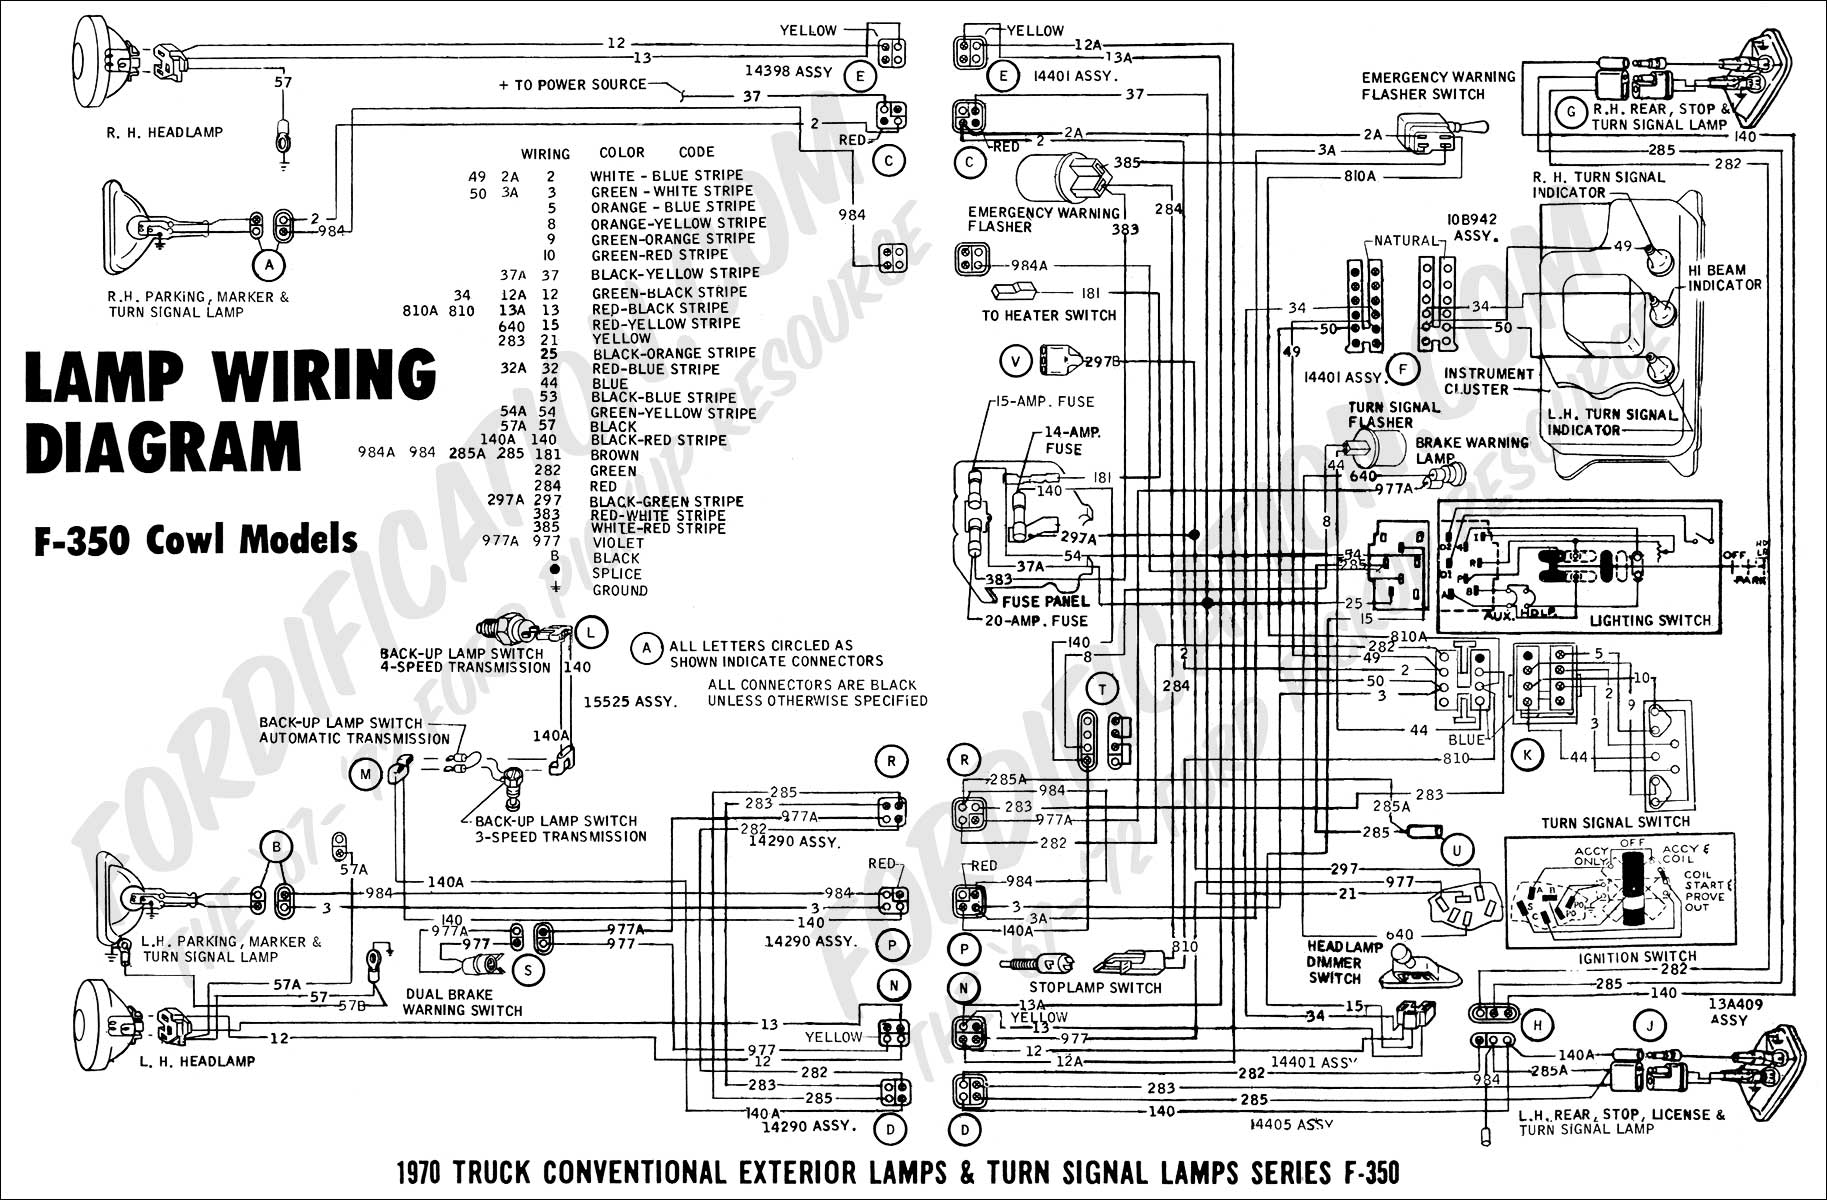 2006 F150 Wiring Diagram Dimmer Library 06 Silverado Tail Light 2003 Ford F350 Transmission Detailed Schematics 1966 Mustang Headlight